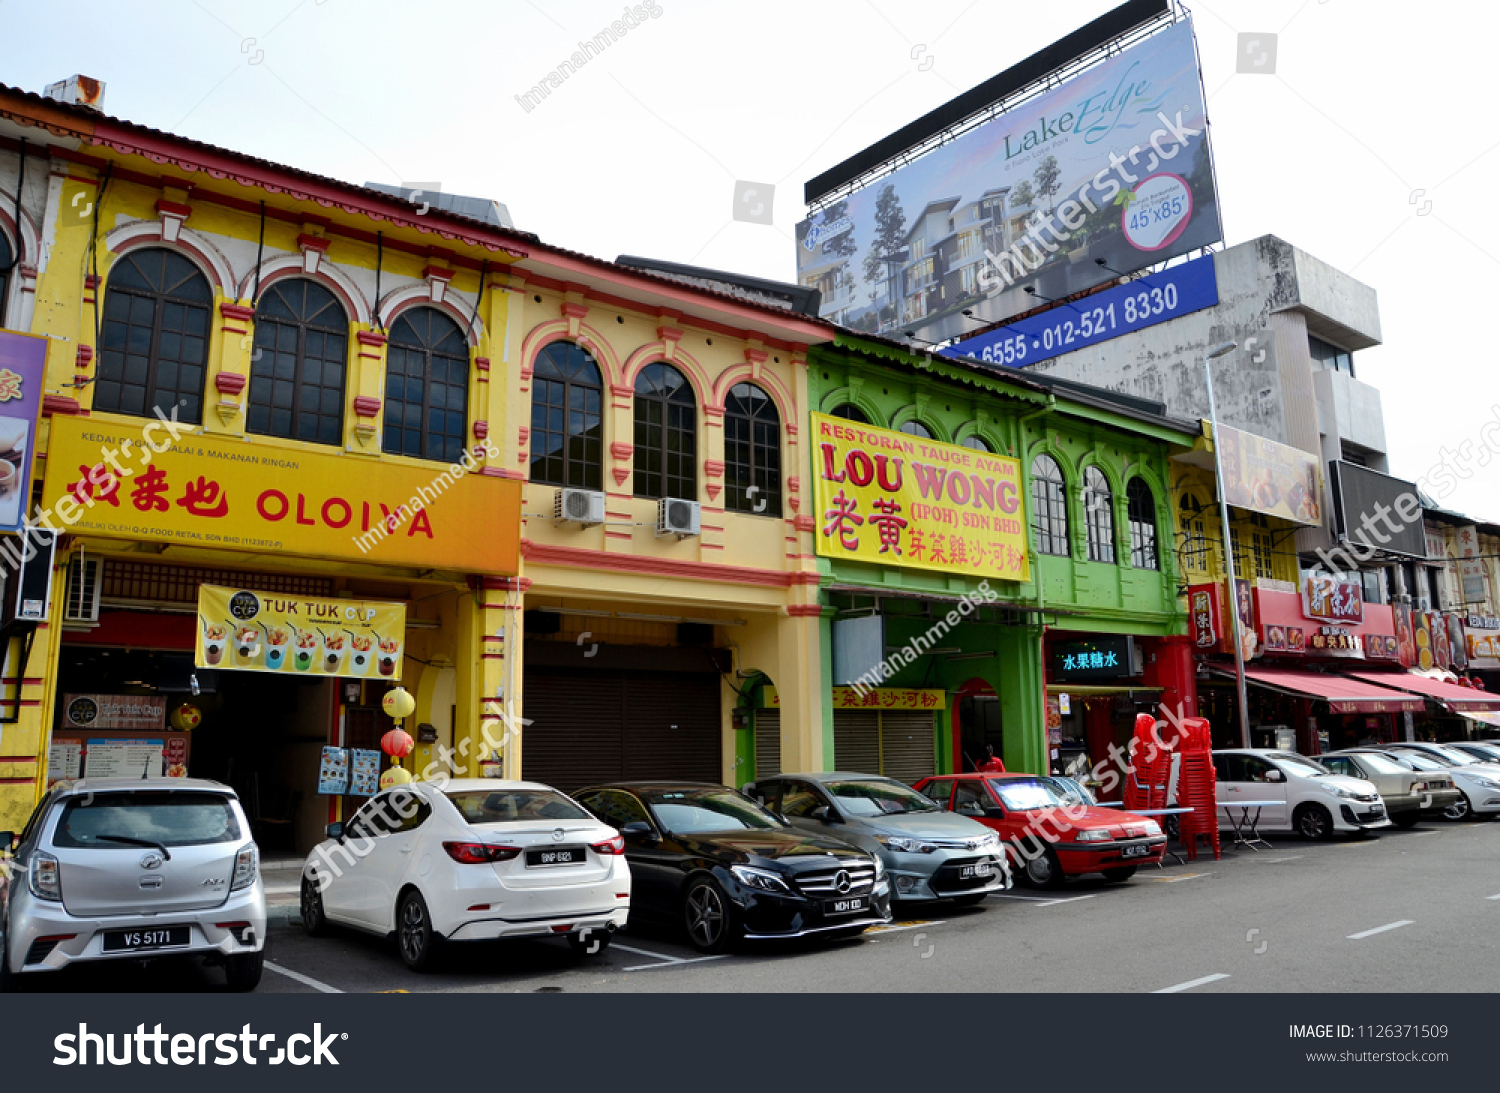 Ipoh, Malaysia - June 4, 2017: Cars parked outside restaurants, food stalls